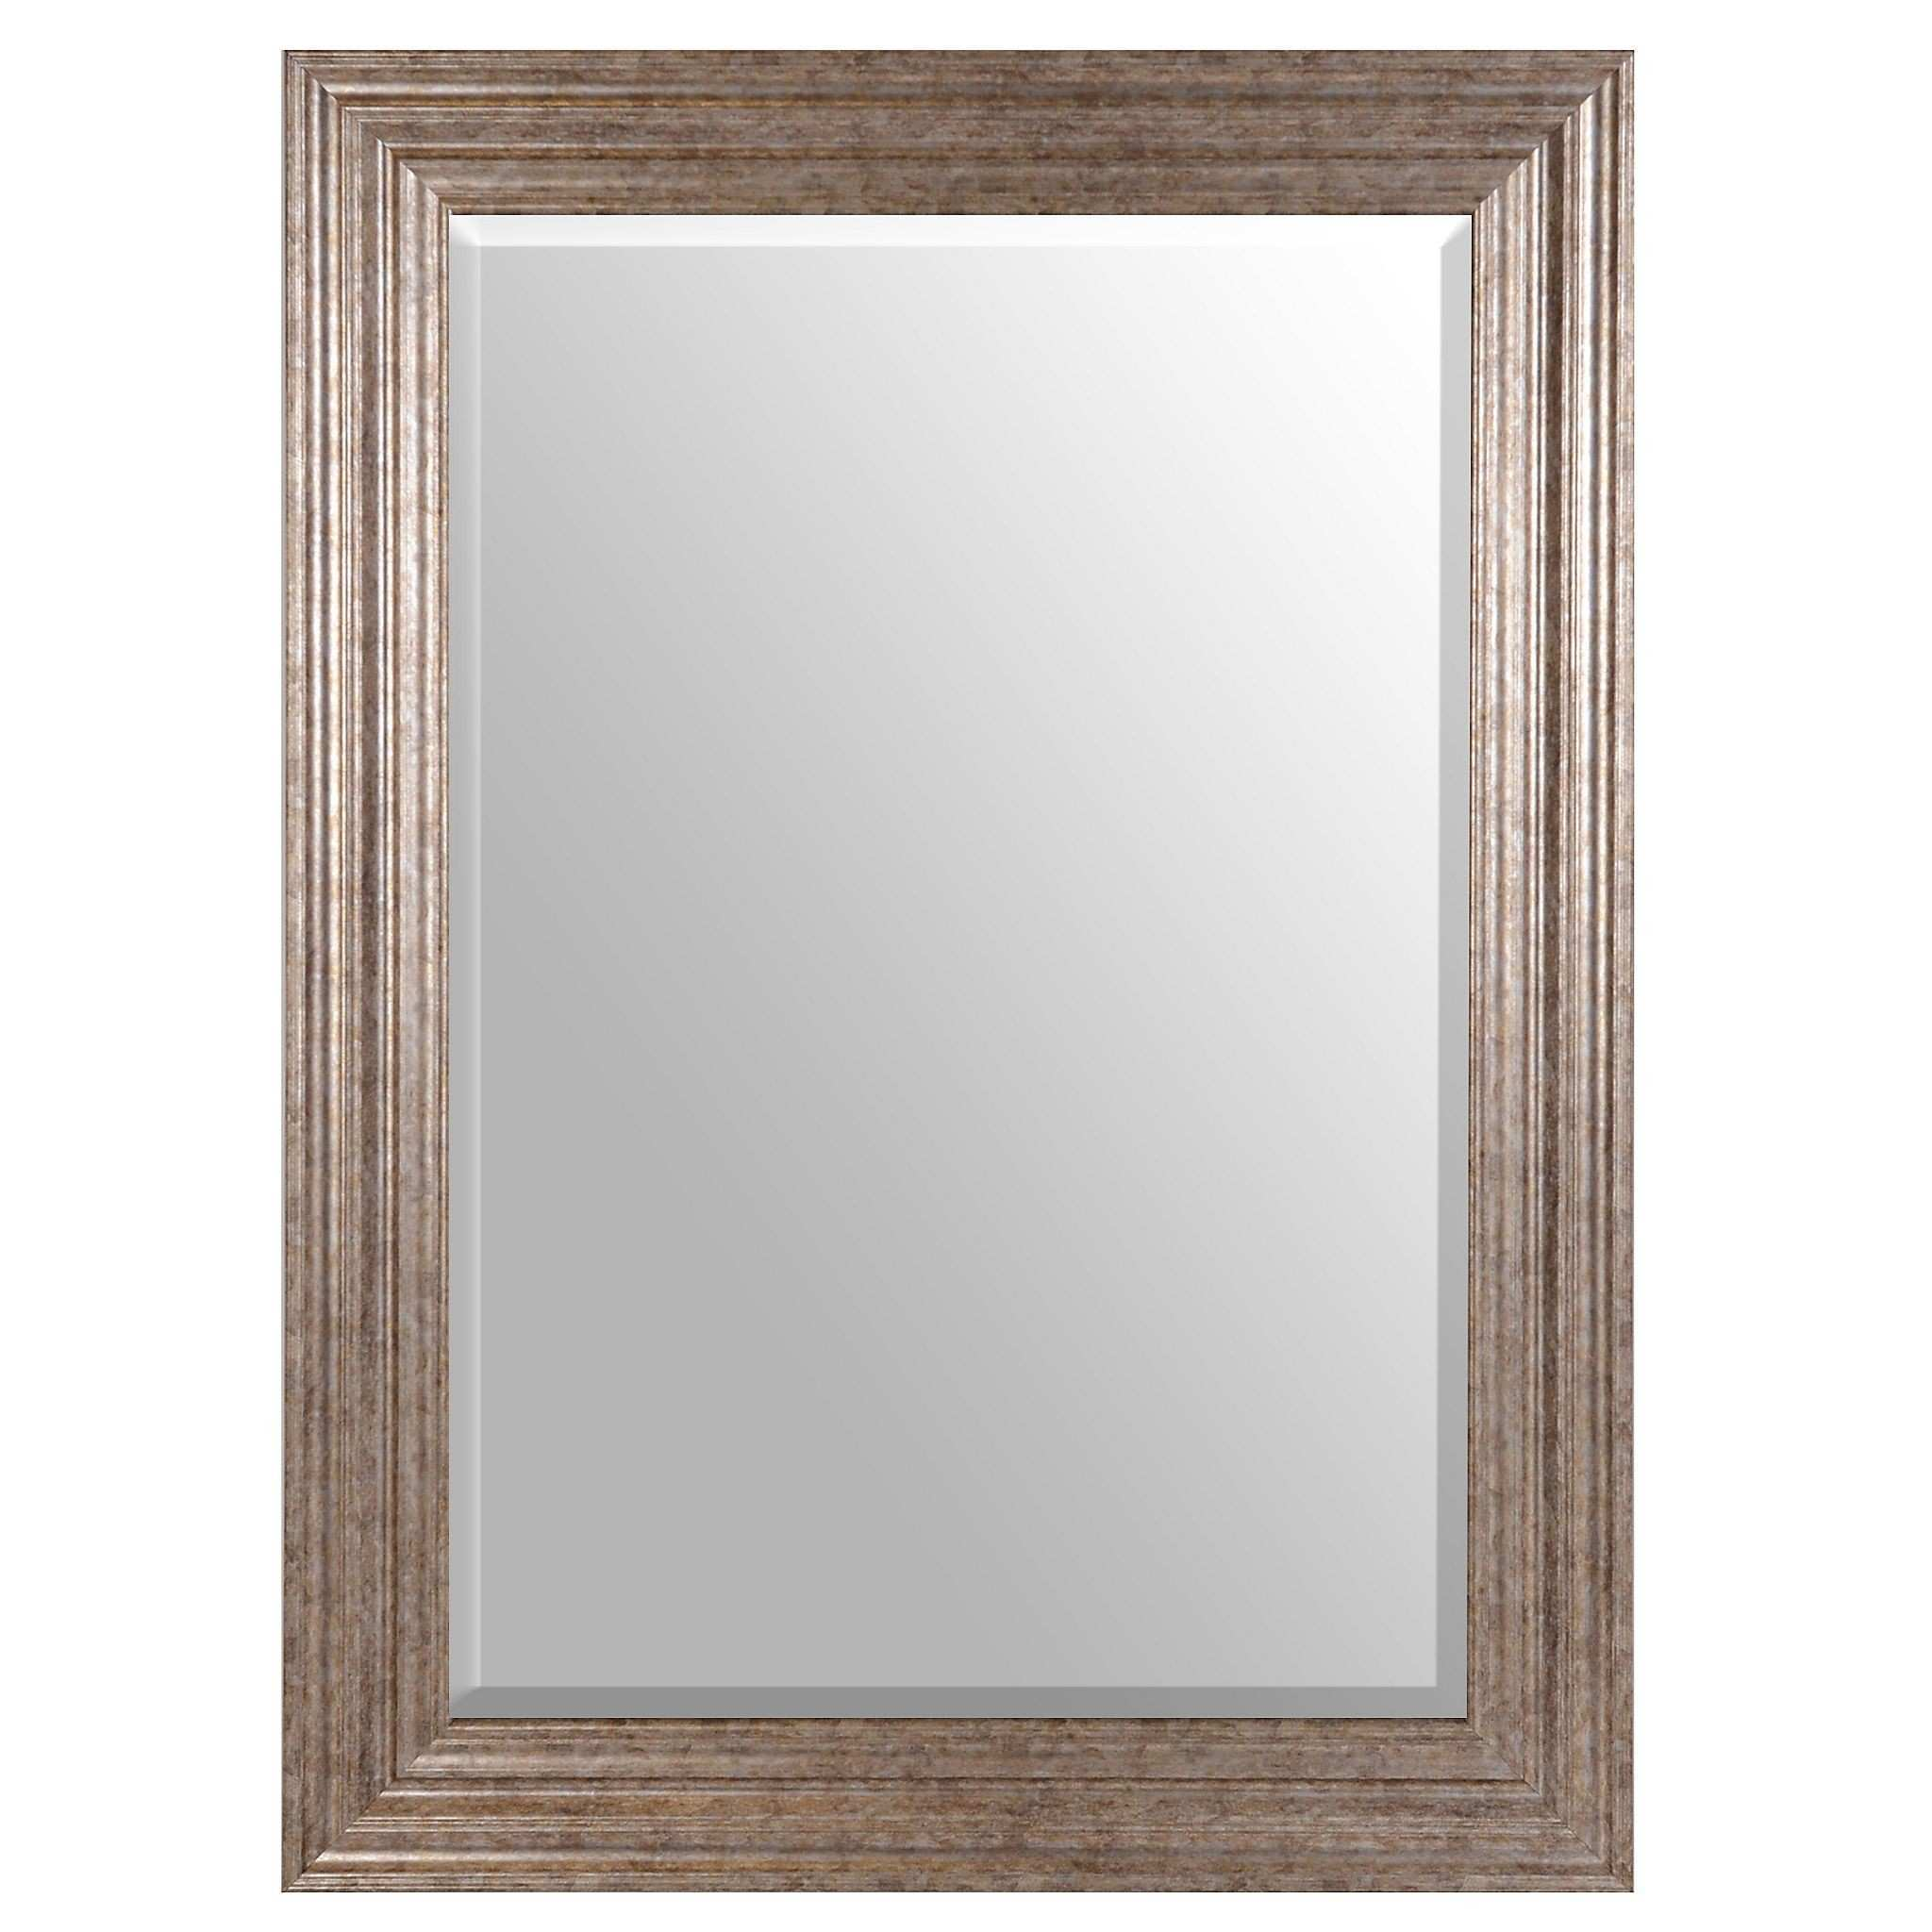 Antique Silver Framed Mirror 32x44 in